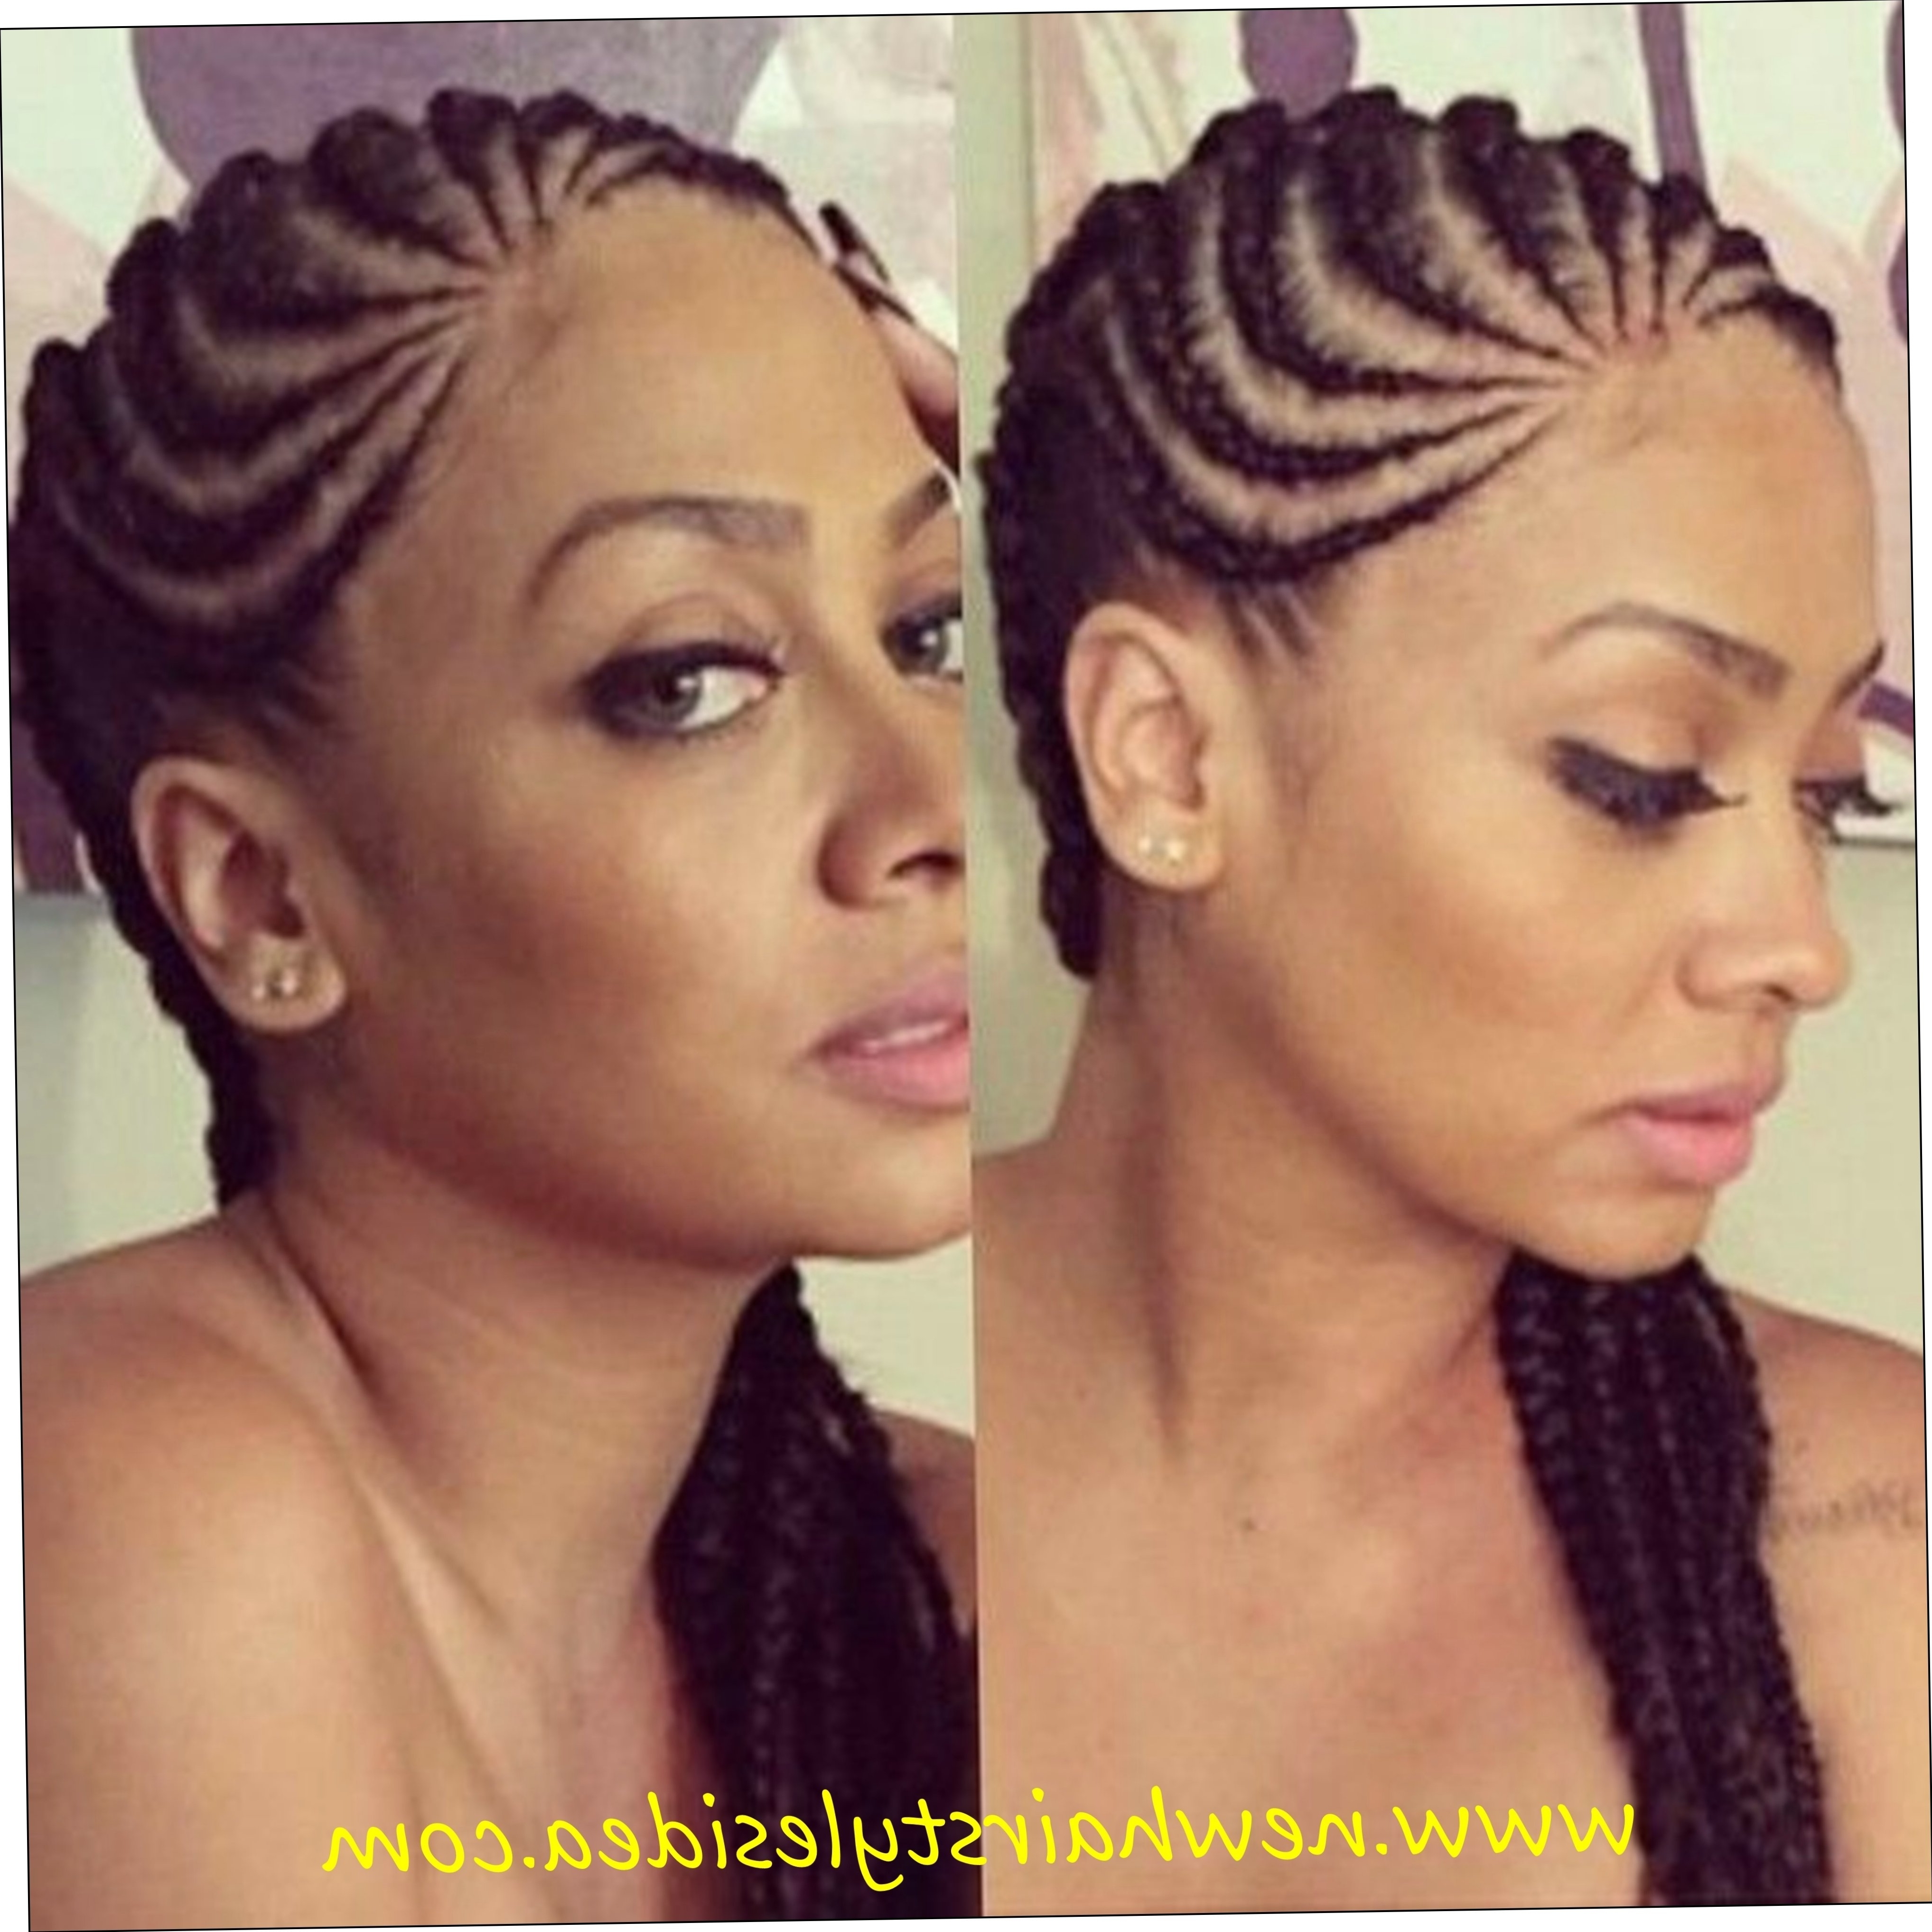 Cornrows Styles For Oval Faces Cornrow Hairstyles For Round Faces Inside 2017 Cornrows Hairstyles For Round Faces (View 7 of 15)